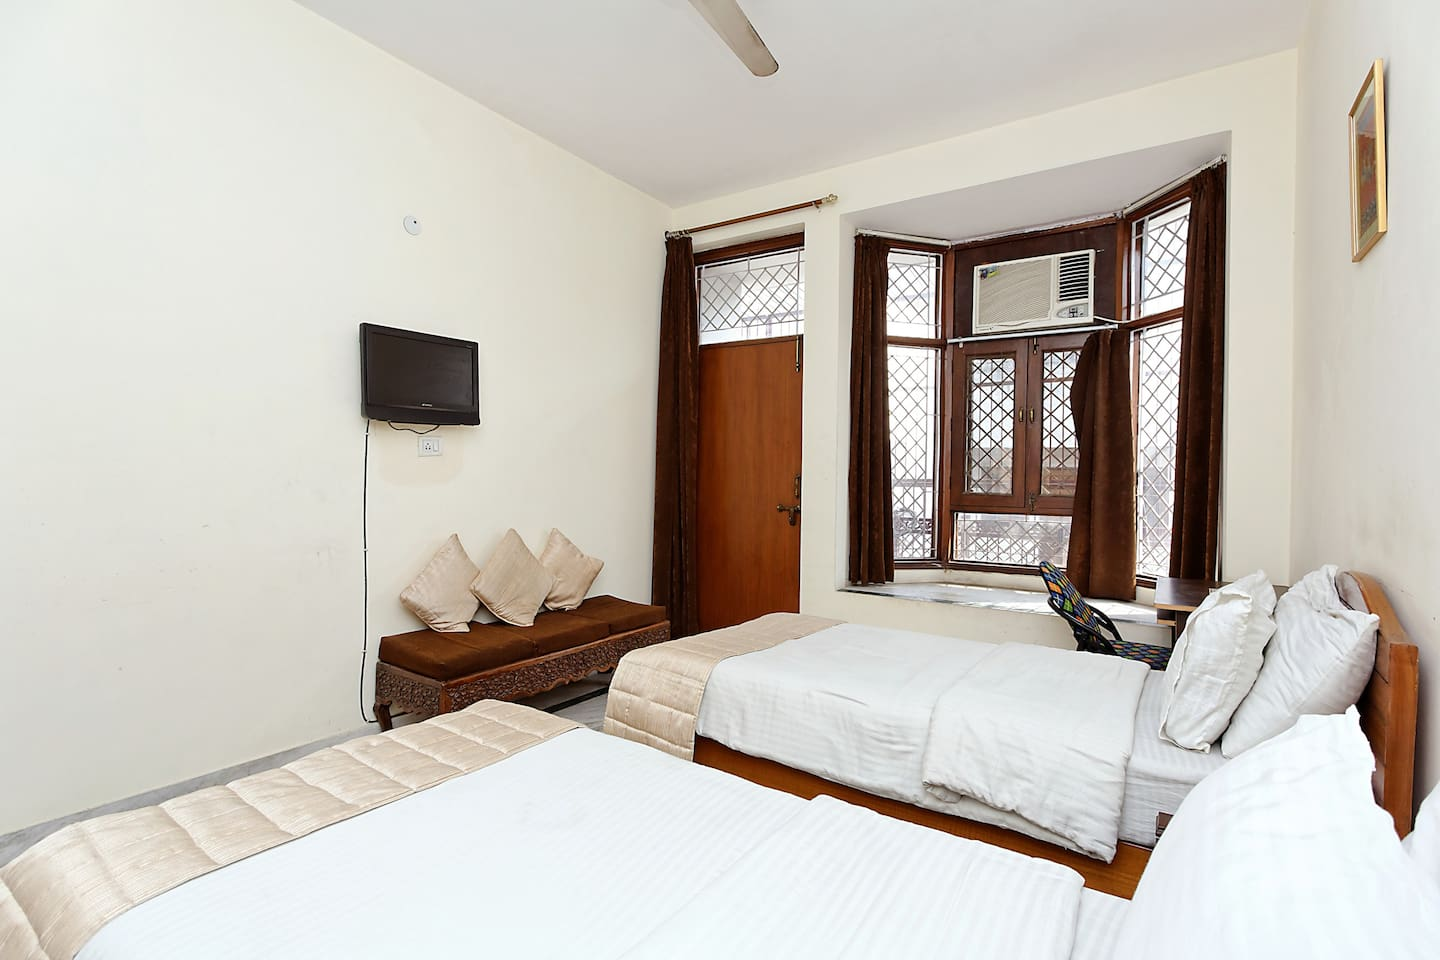 A comfort stay in Noida !!